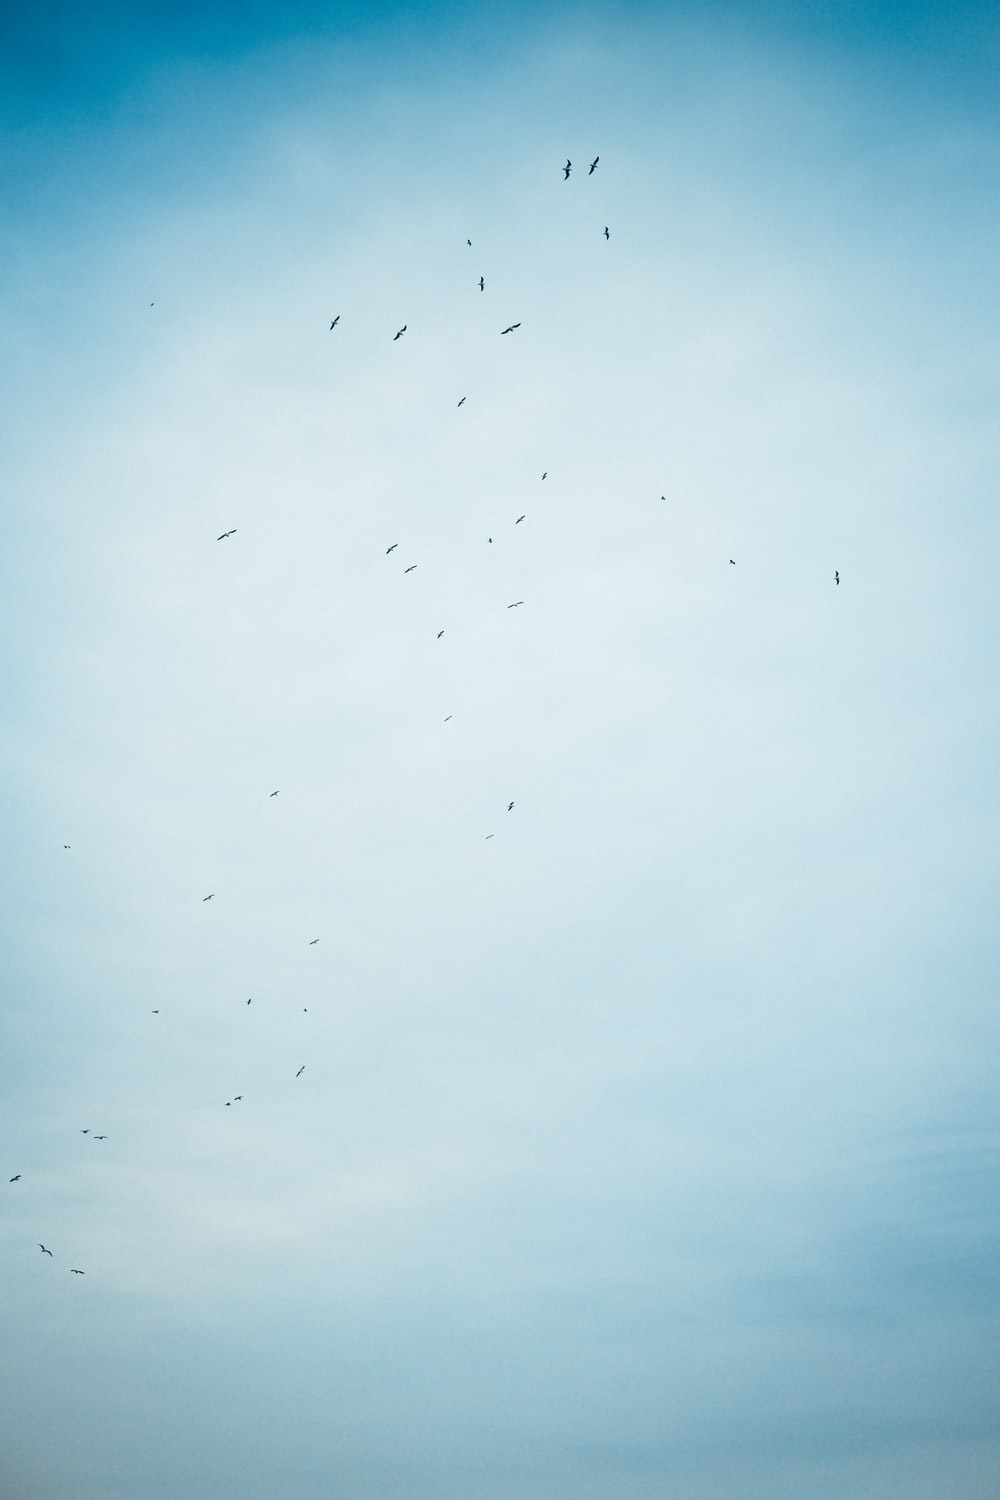 flock of birds flying under white clouds during daytime